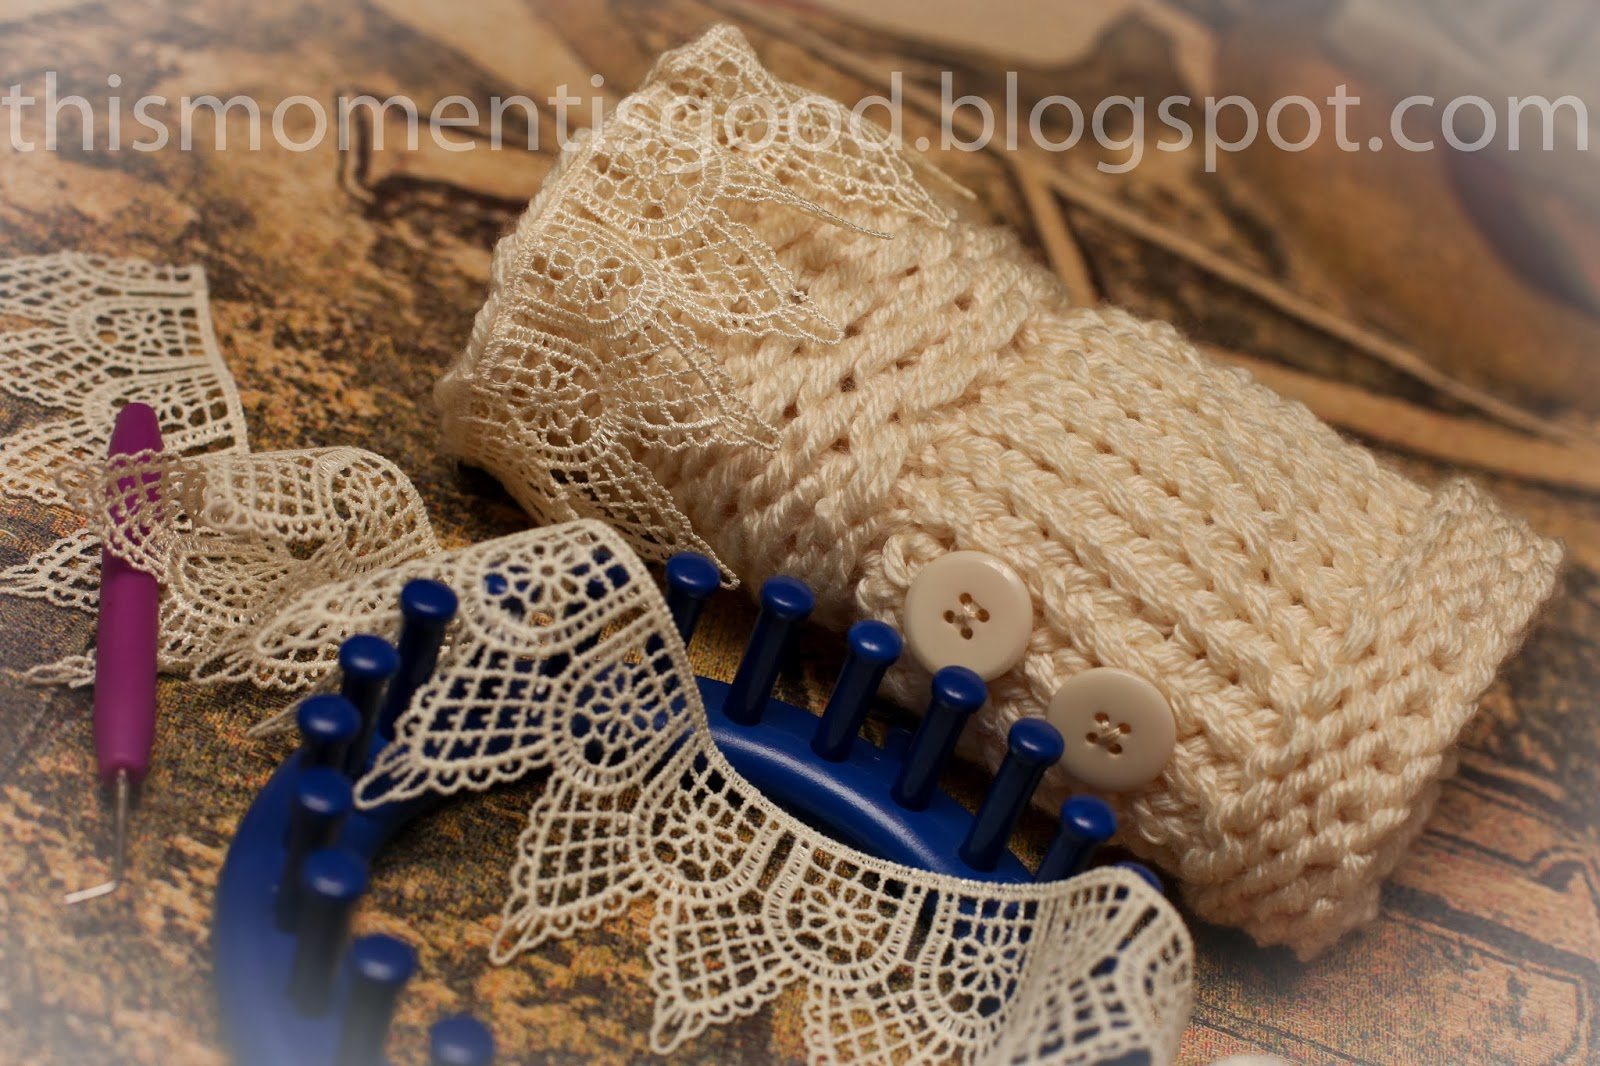 LOOM KNIT WRIST WARMERS | Loom Knitting by This Moment is Good!